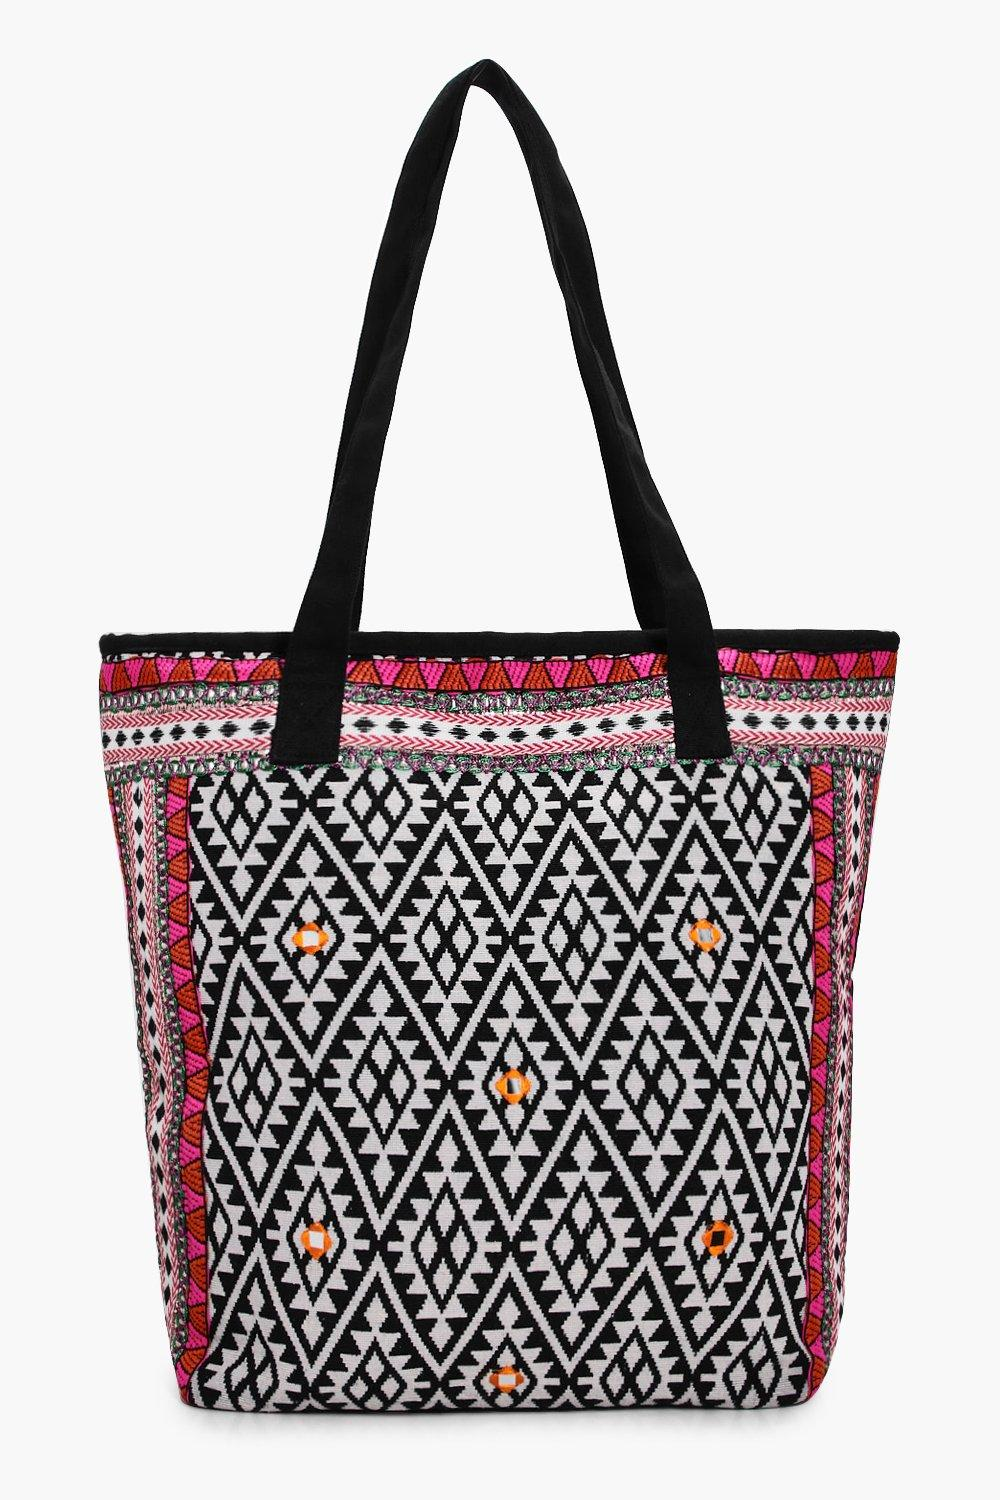 Embroidered Edge Aztec Beach Bag - multi - Lacey E